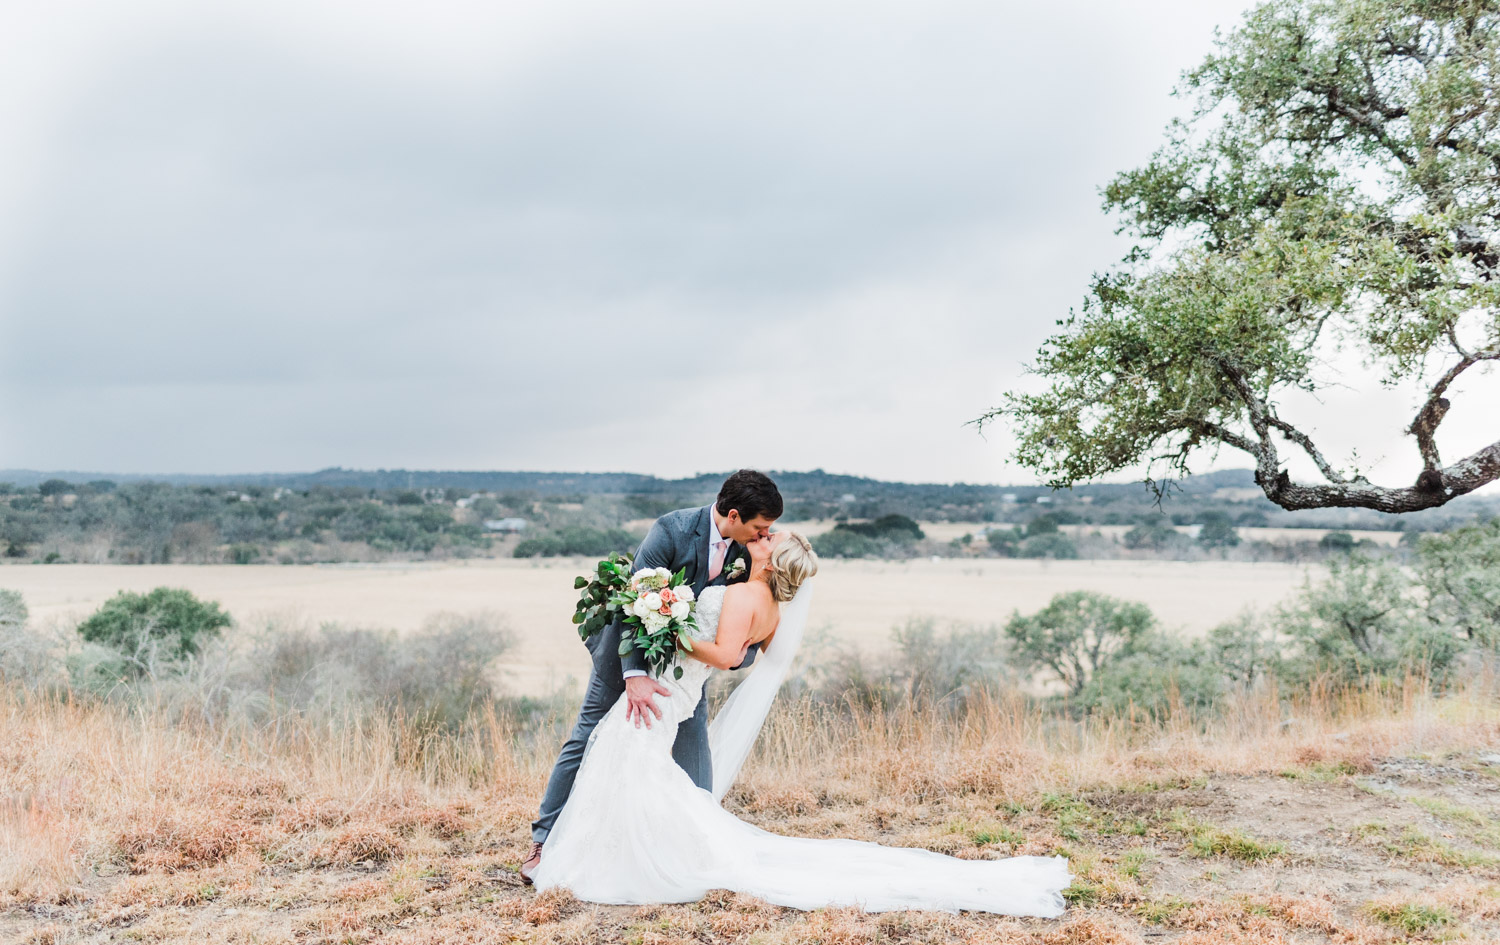 Adrienne + Franz - The pictures are so beautiful!! Thank you both so much for being part of our special day—it wouldn't have been the same without y'all!